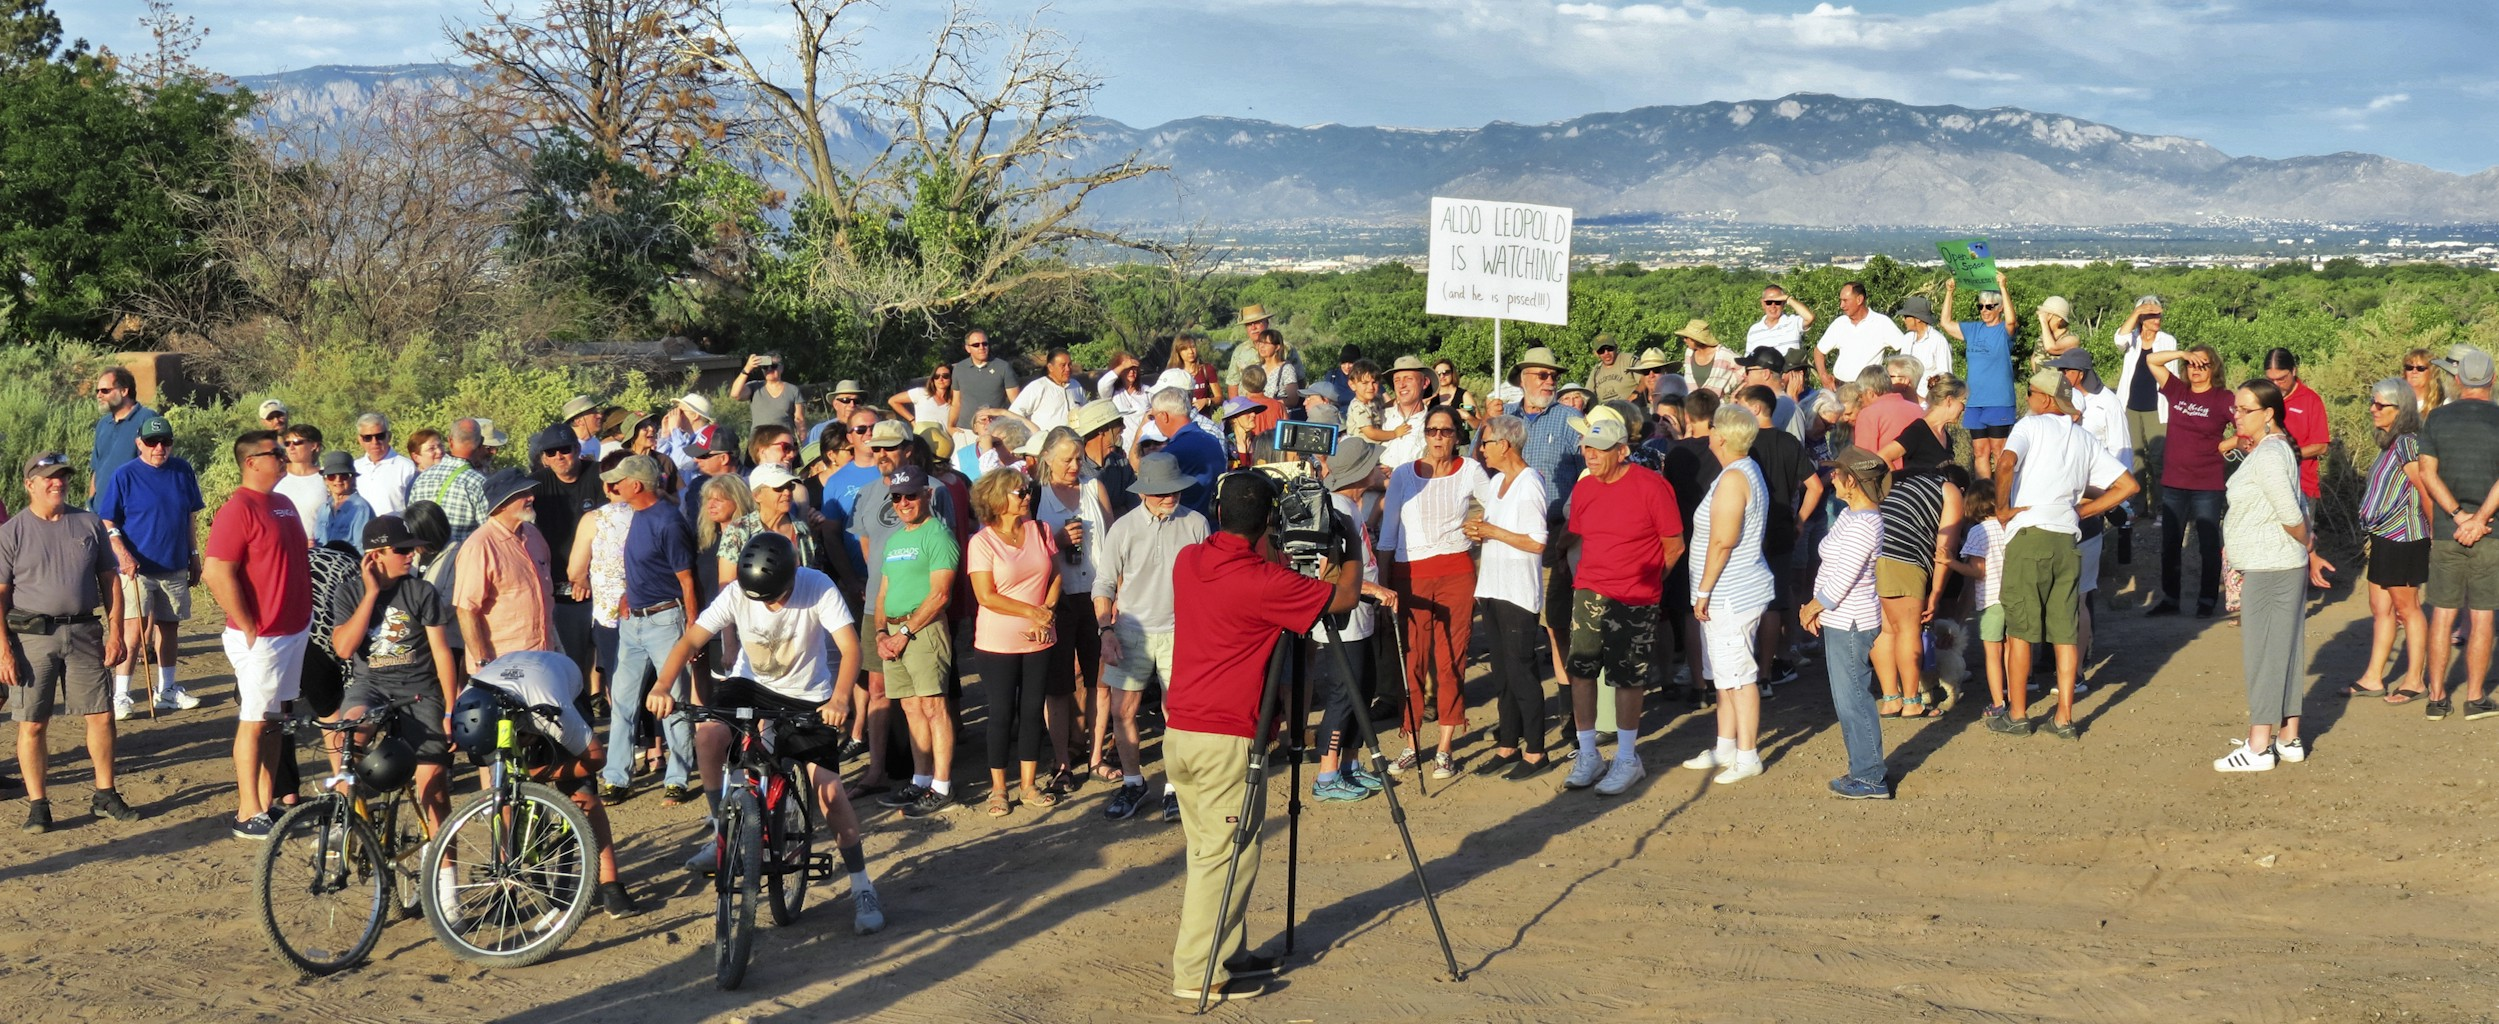 About 130 people gathered to show their support for the wetland.